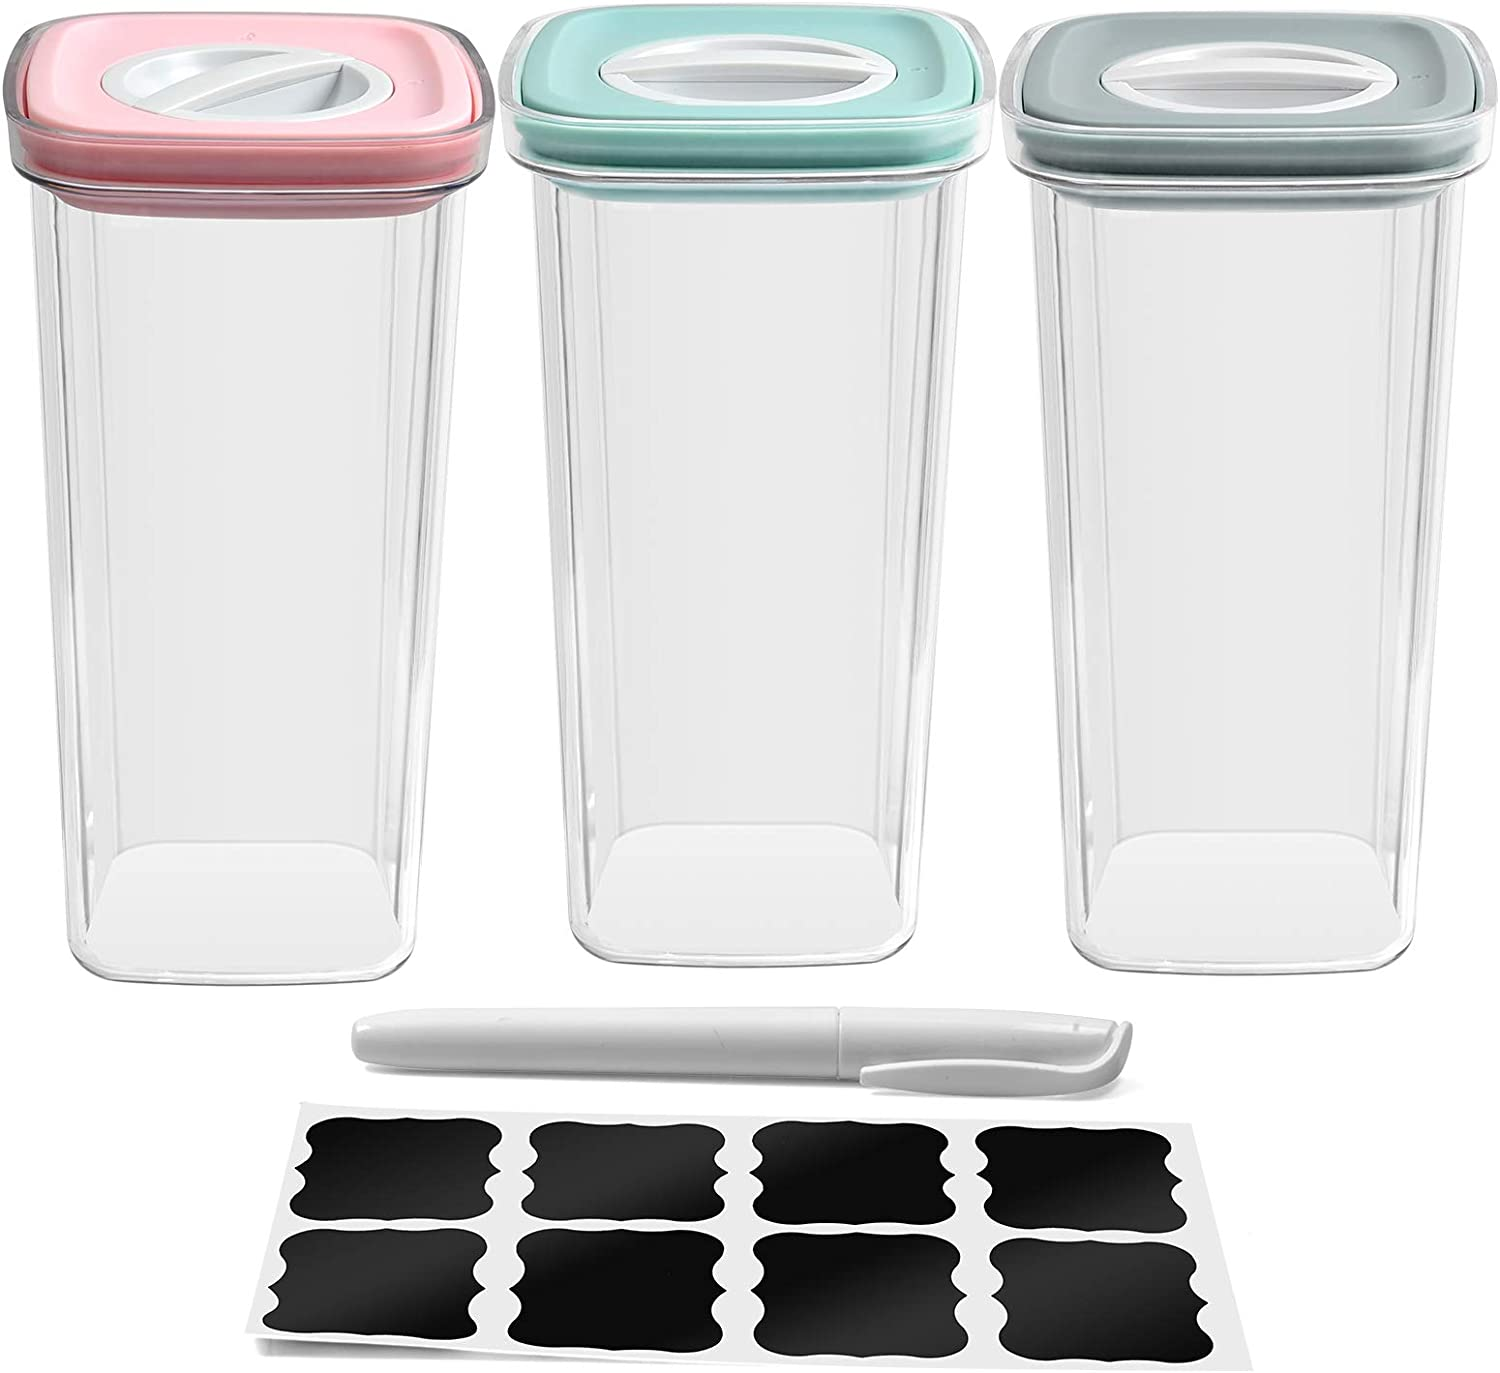 3-pack 2L air tight cannisters food storage containers set pantry kitchen accessories organizing organization organizer jars for cereal flour sugar home|sturdy plastic| air-tight lid